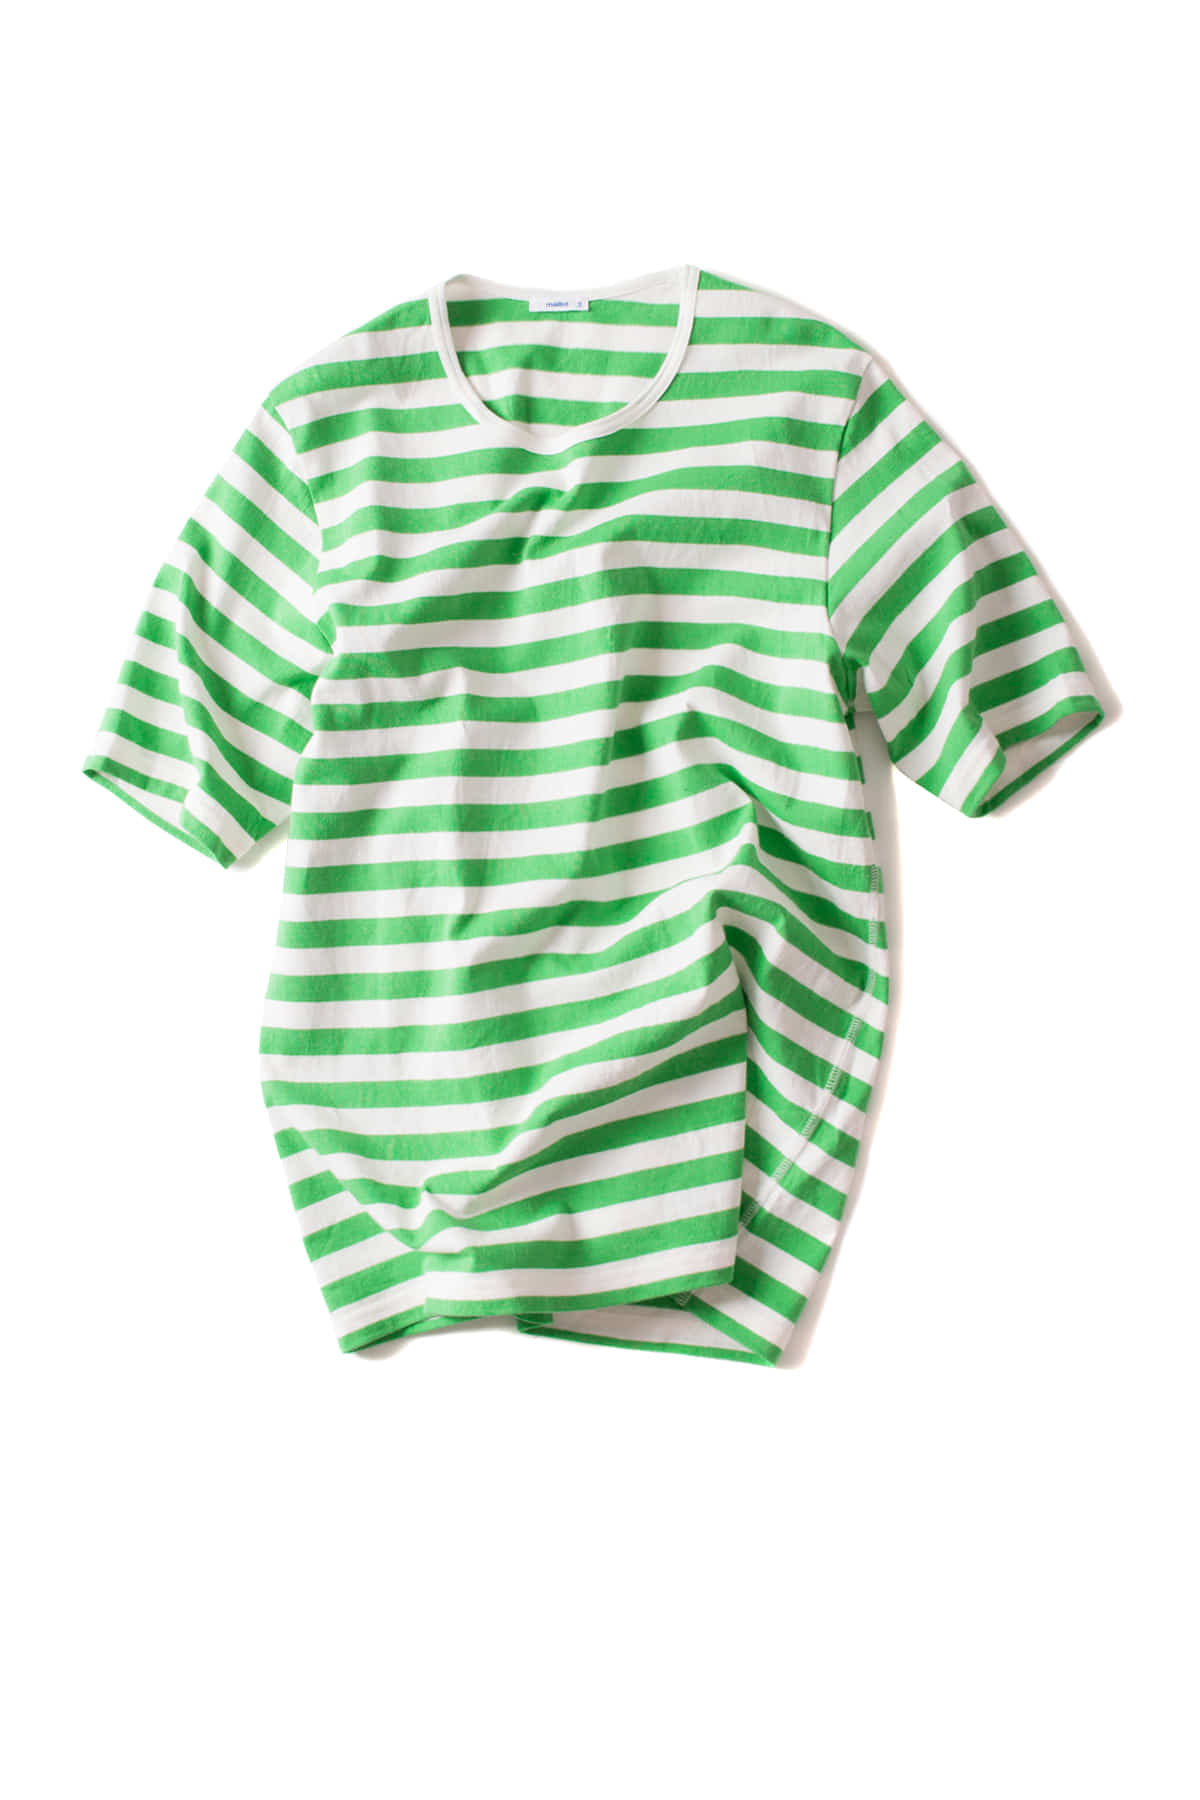 maillot : Border Short Sleeve T-Shirt (Green)